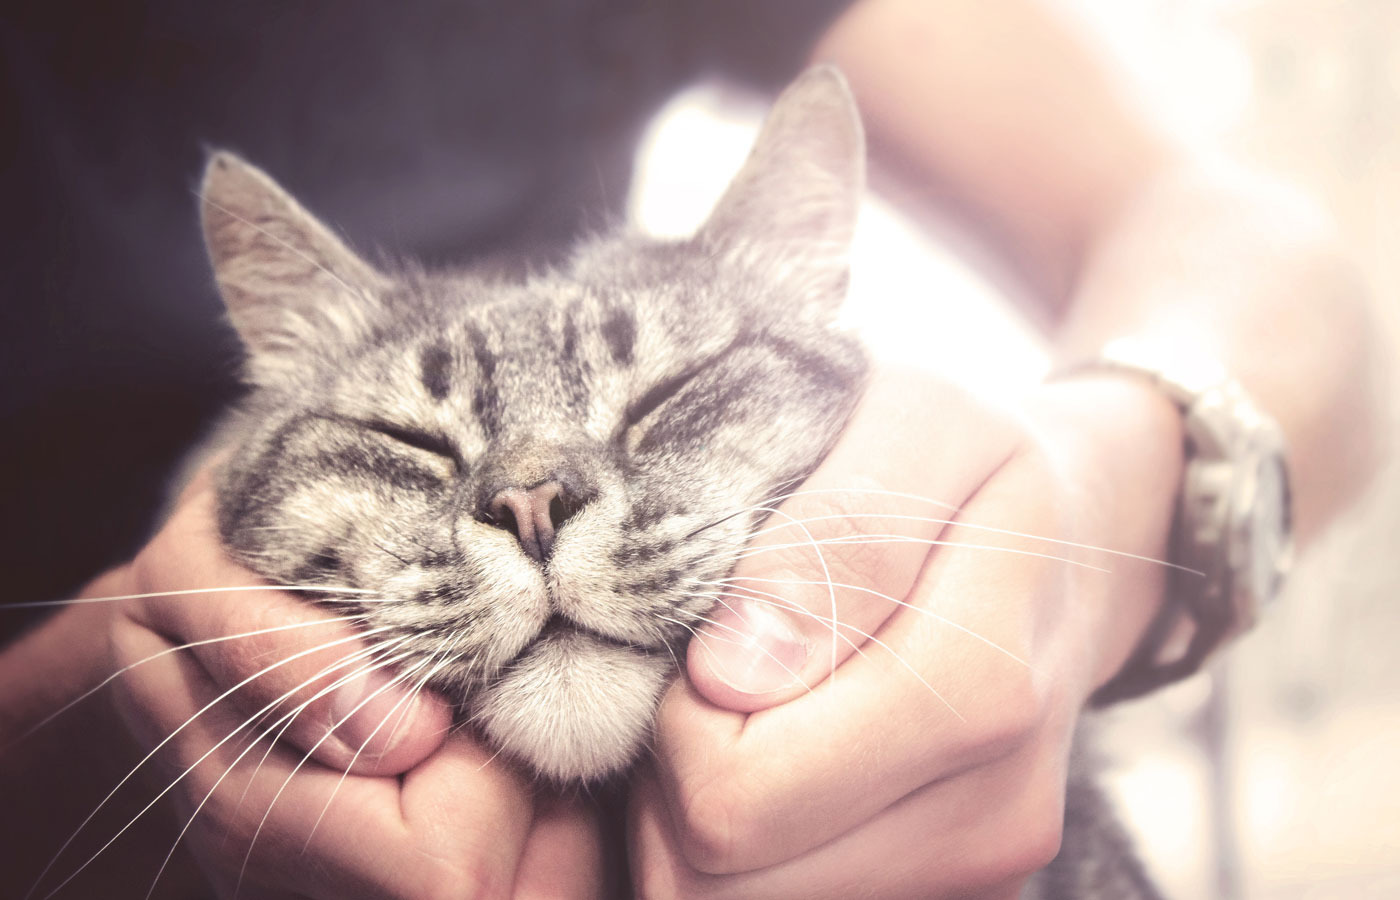 lovely cat in human hands, vintage effect love for the animals